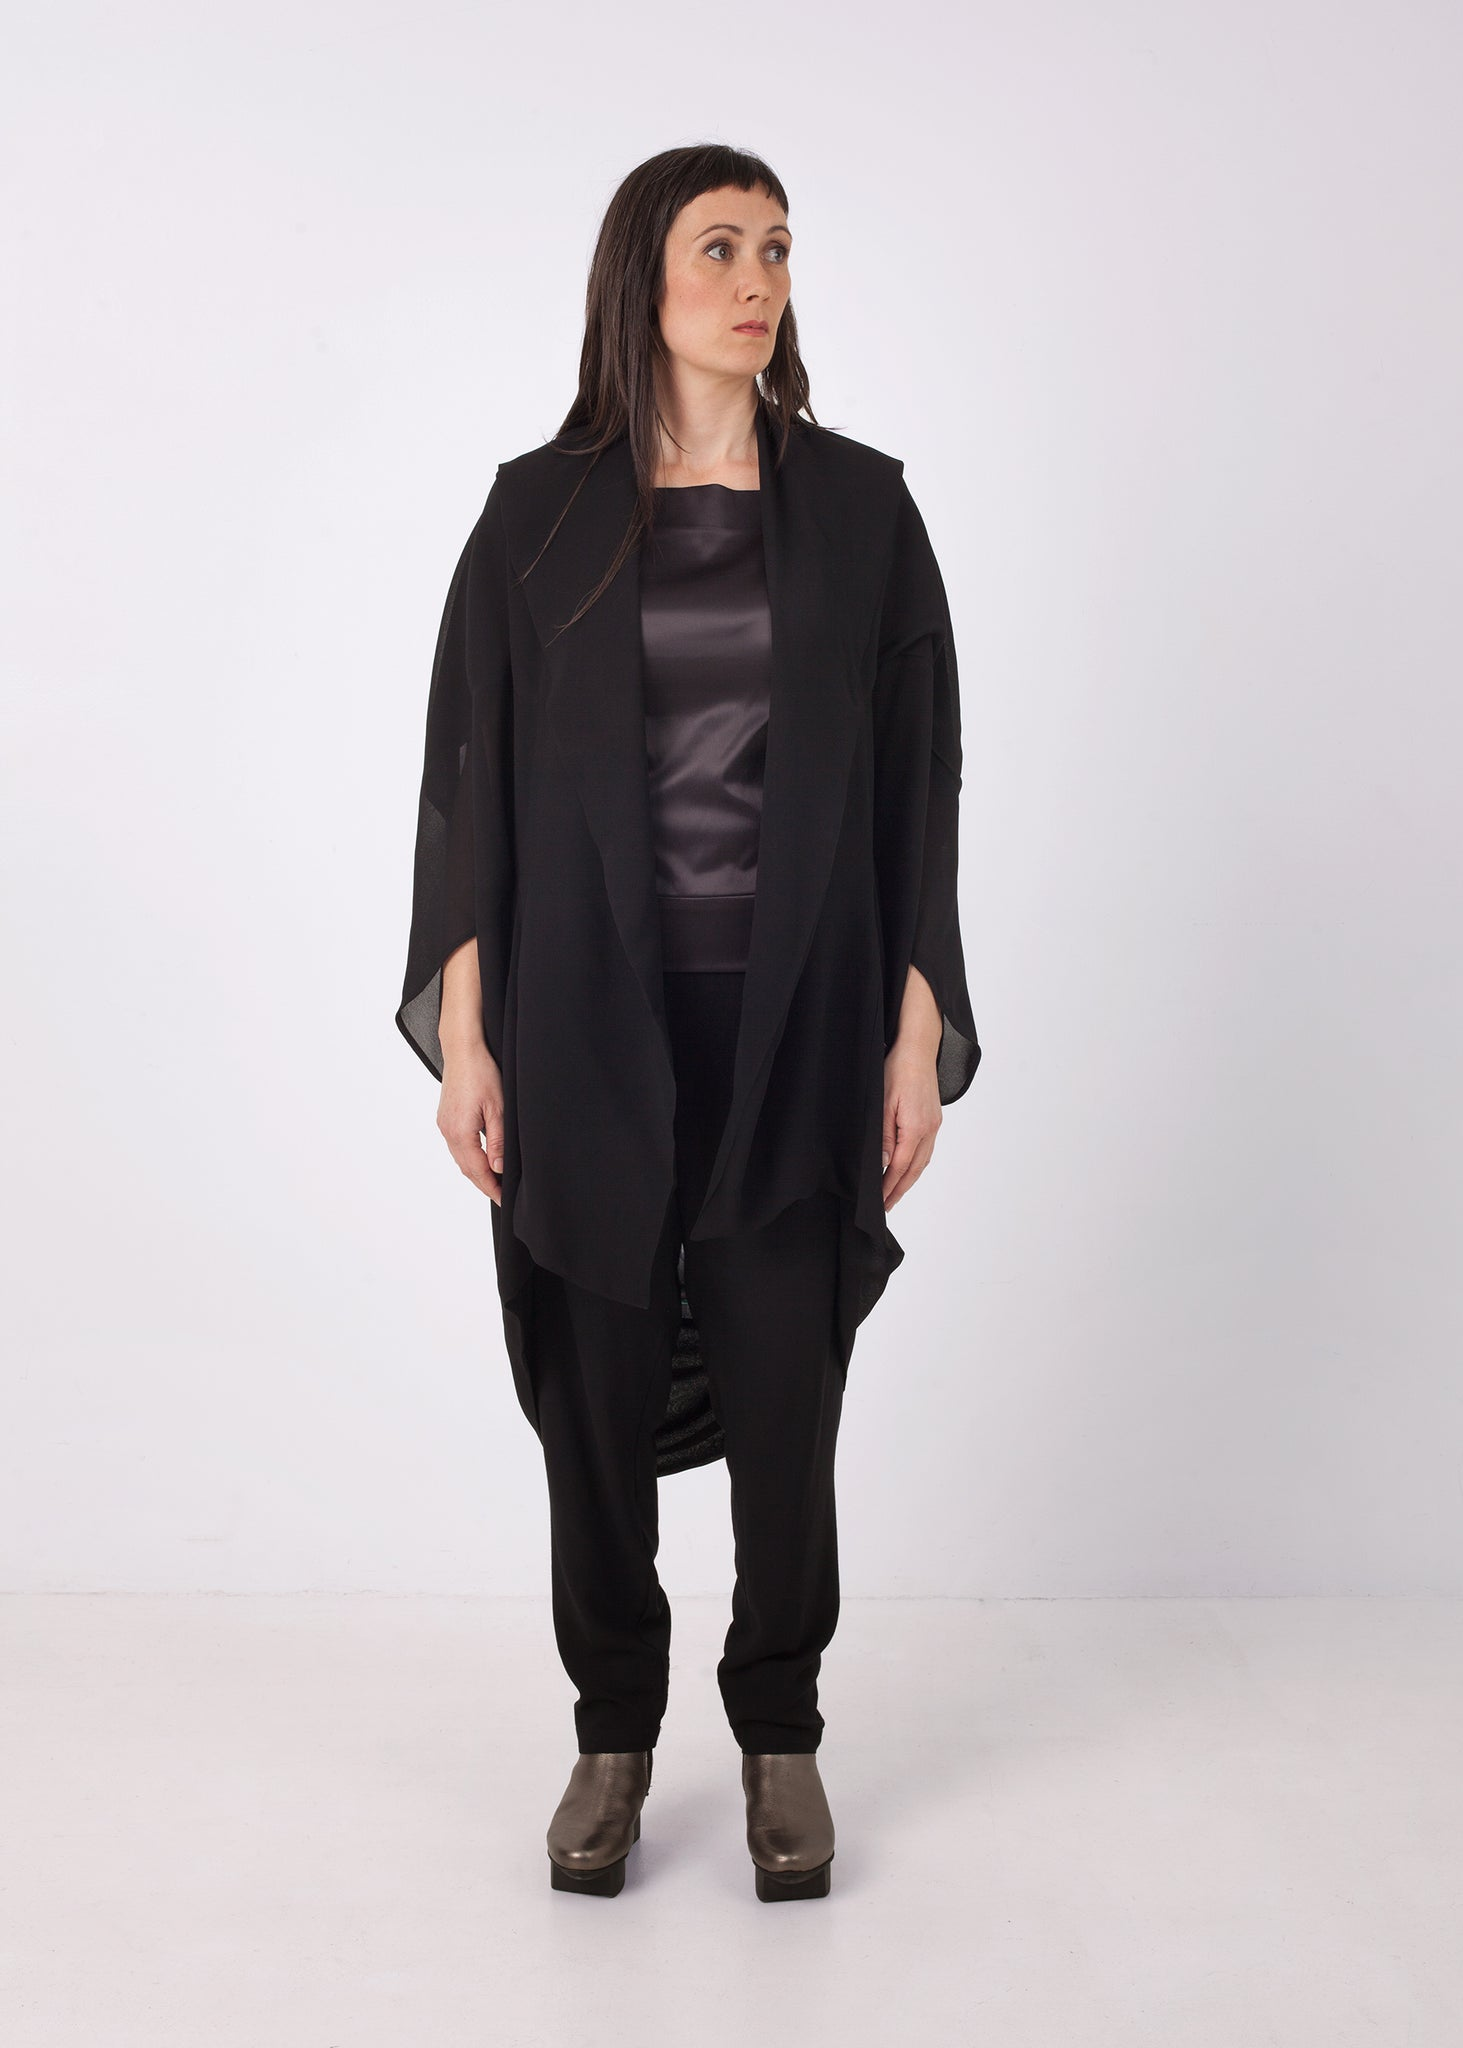 Fraser Crowe Slash Neck Twofold Top Charcoal Drawing Black, ethical fashion, sustainable fashion, designer clothes, plus size clothing, textile print clothing, luxury online fashion